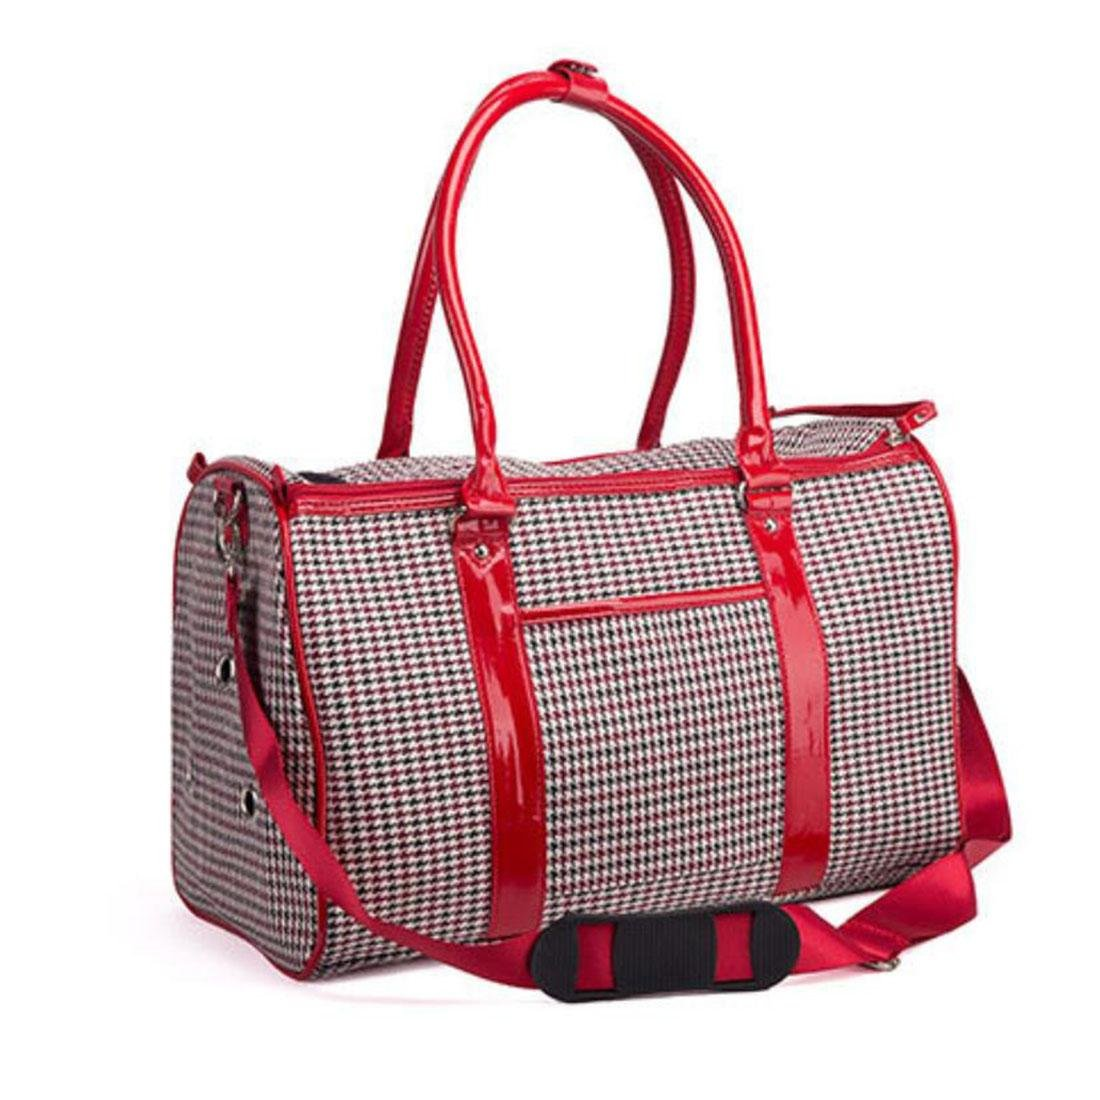 Red WYXIN Pet Cat Small Dog Travel Carrier Bag Pu Leather Outdoor Foldable Portable Dog Carrying Tote Bag Handbag 40cm  26cm  20cm , Red